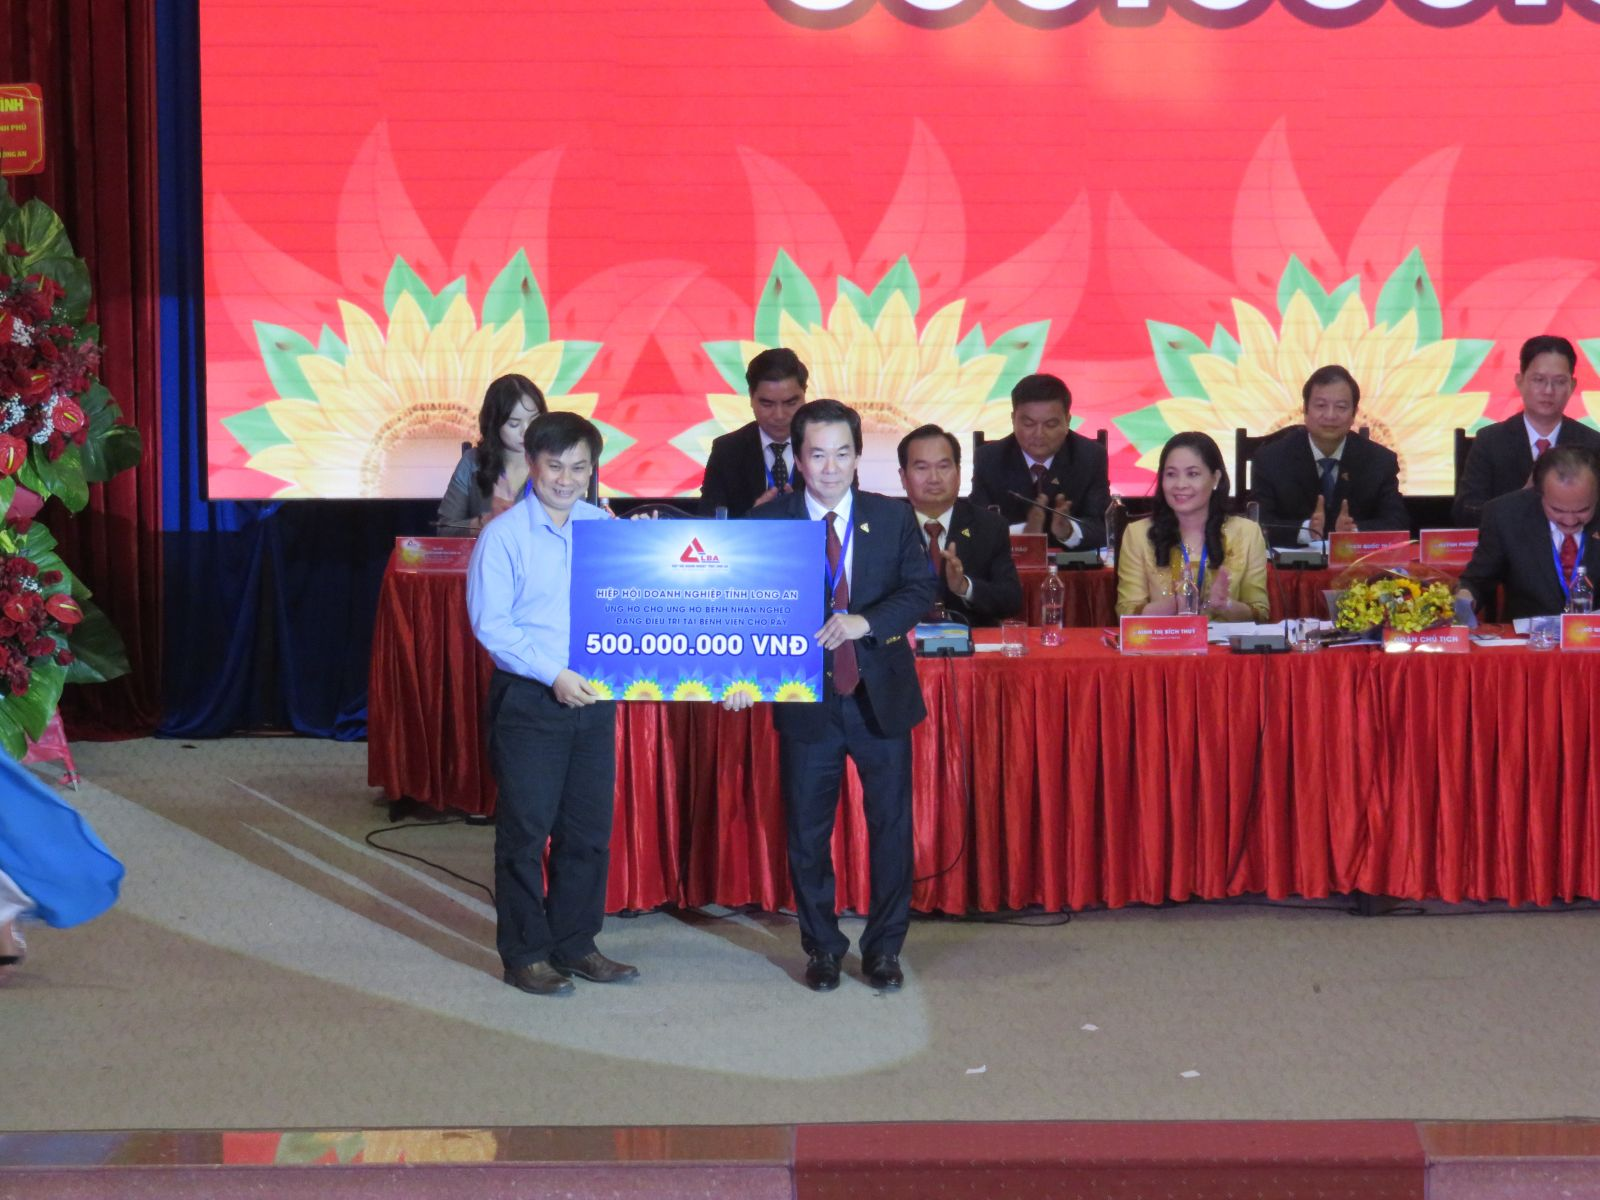 Representative of the Executive Committee of the Association awarded the amount of support to the poor patients who are being treated at Cho Ray Hospital